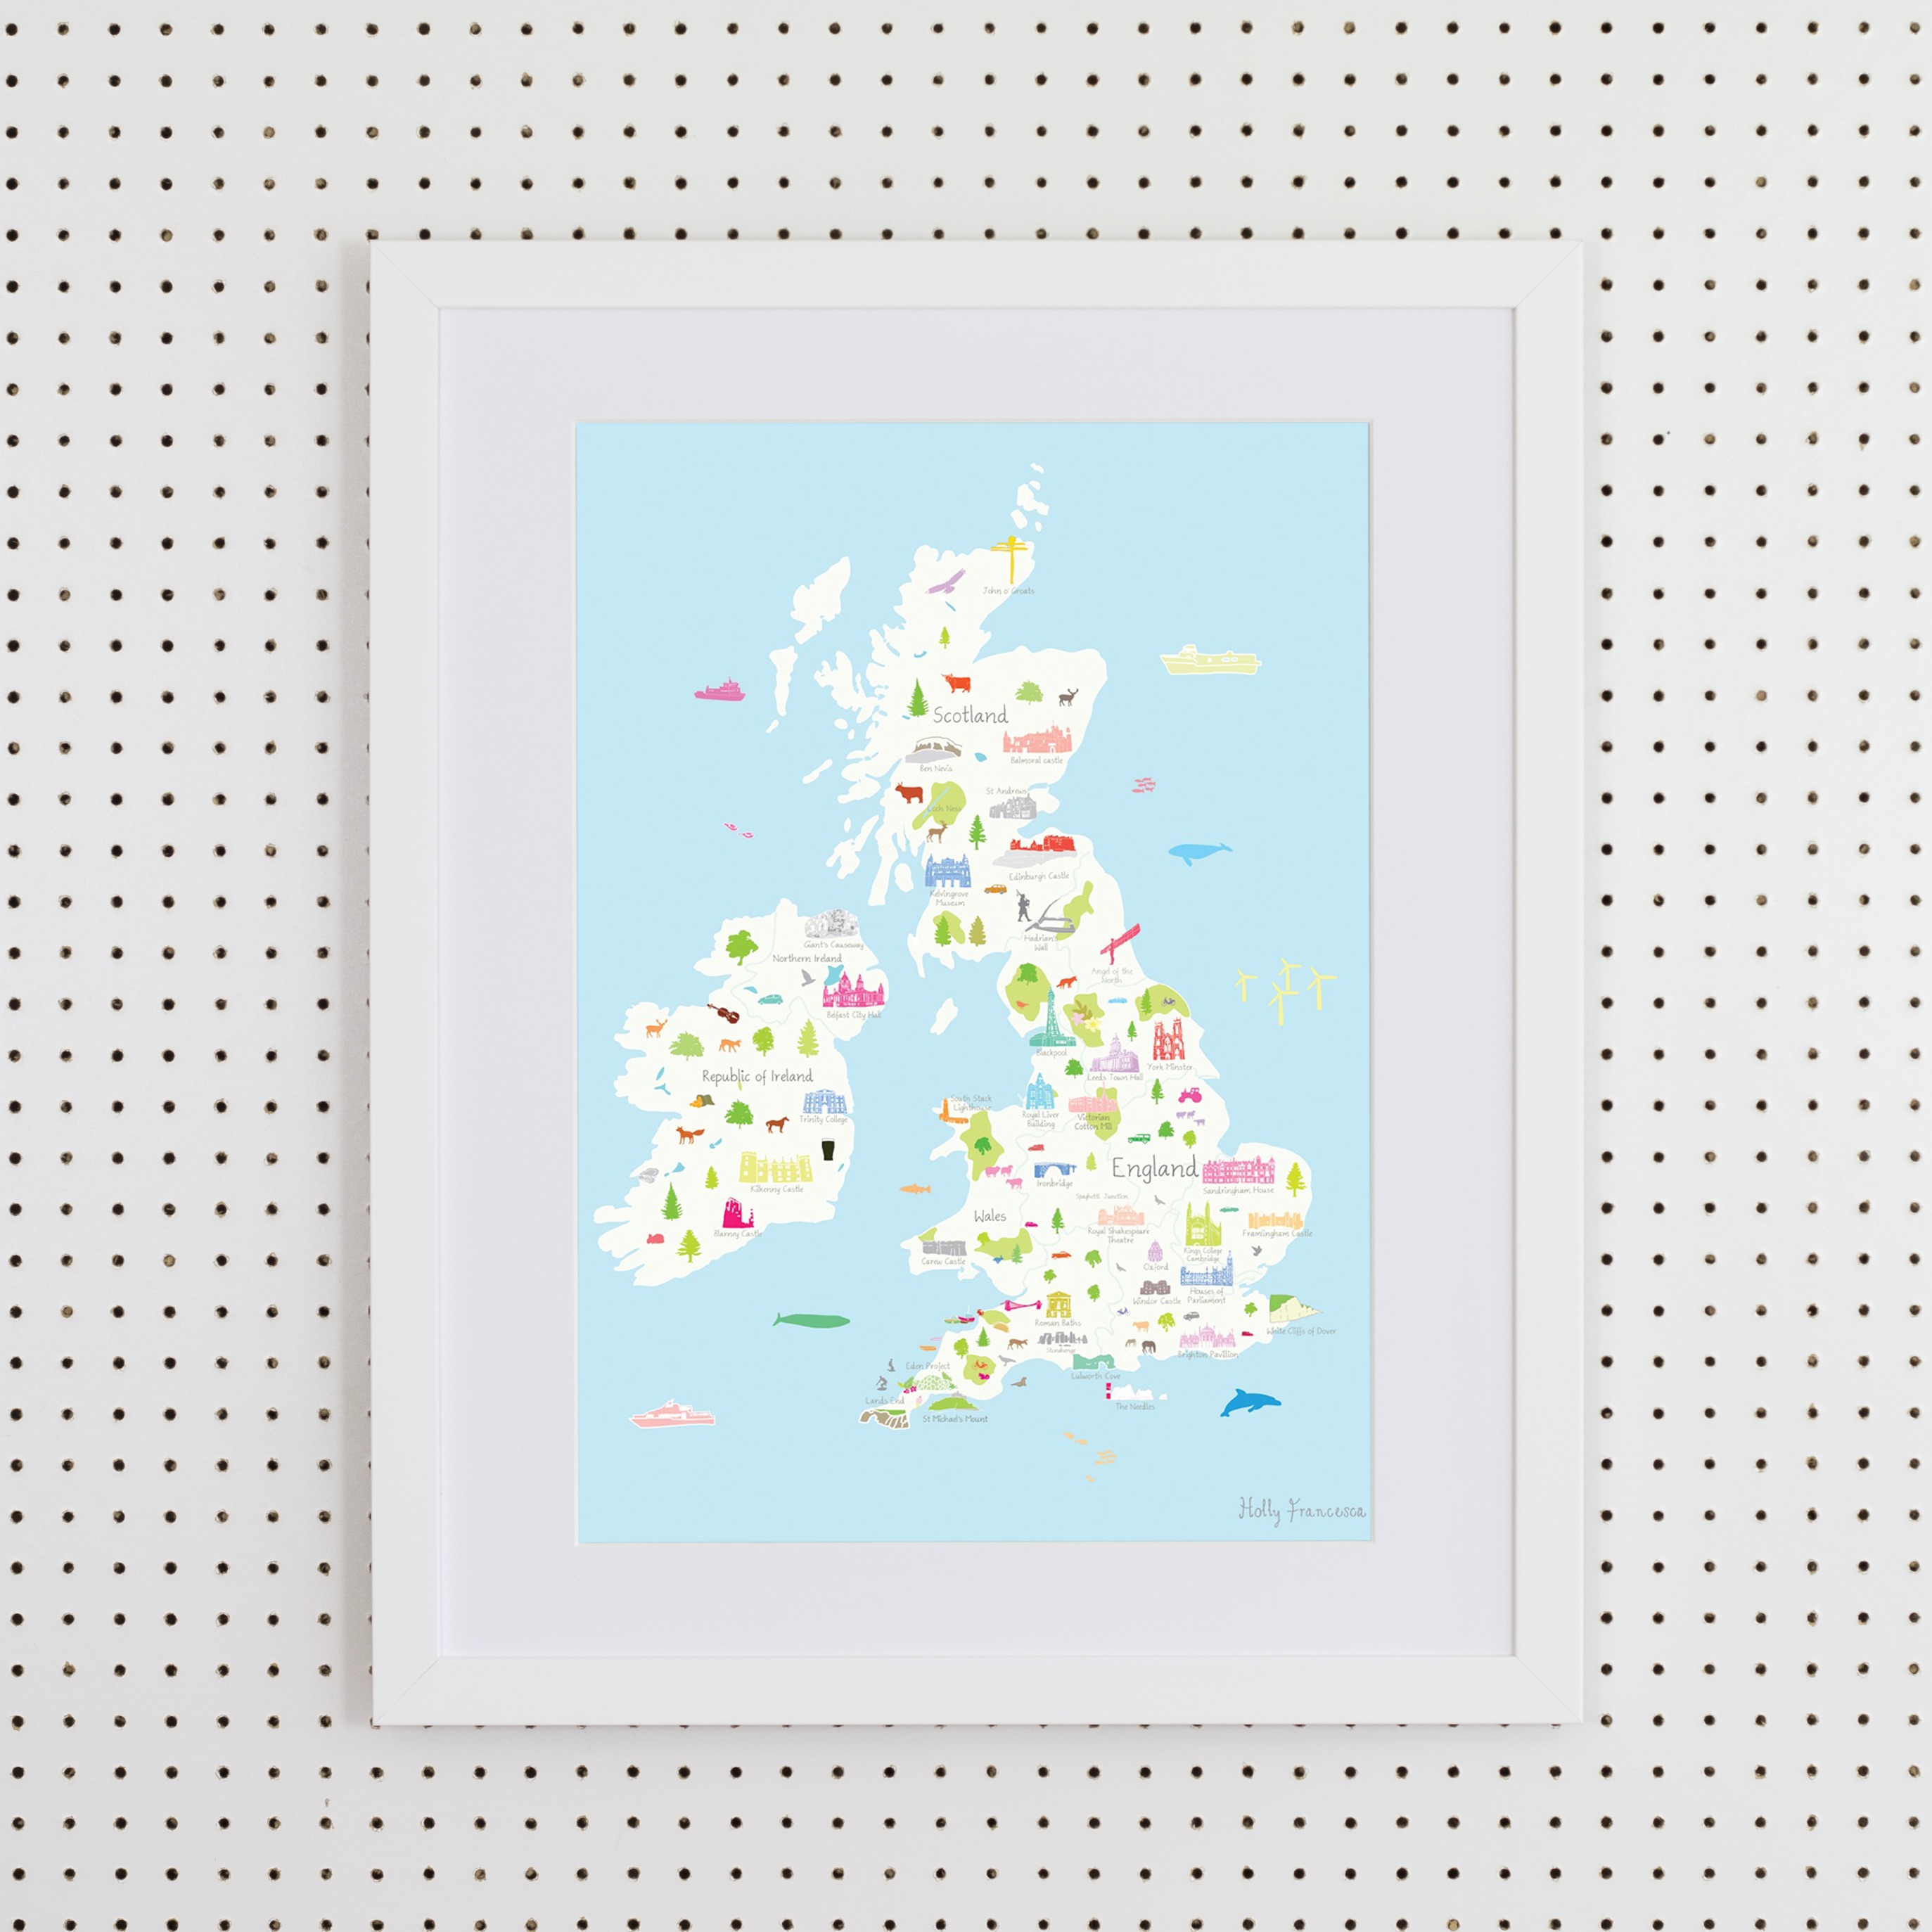 UK Map in Frames